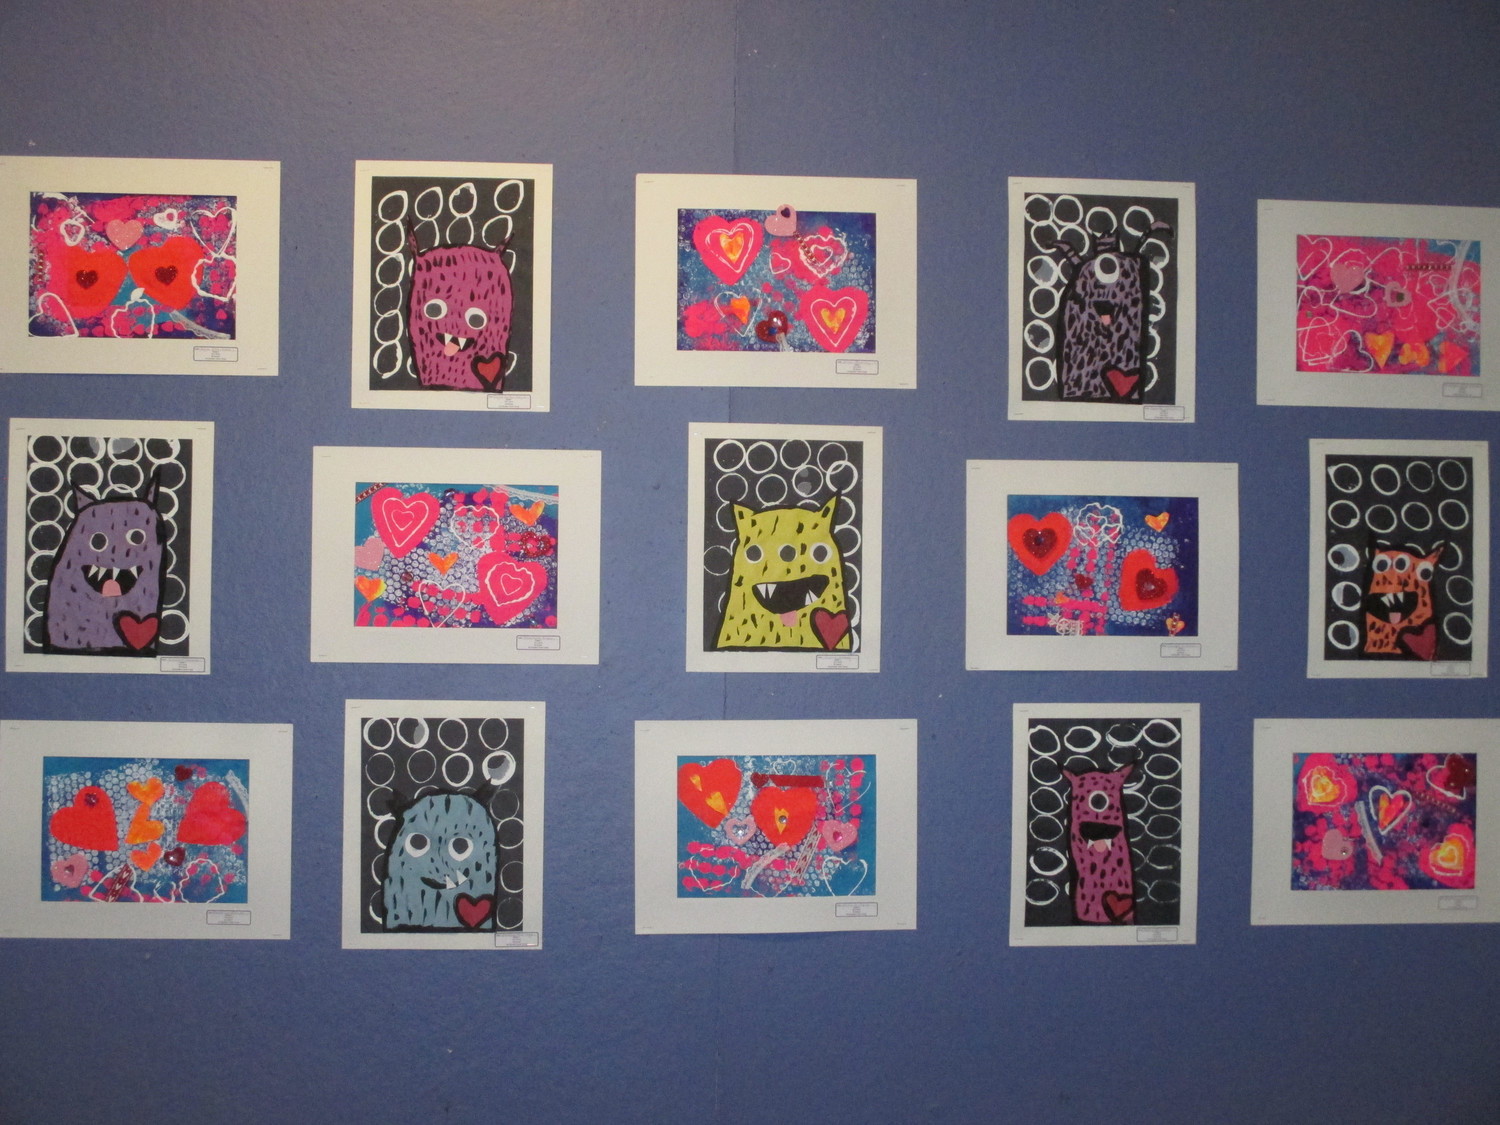 Lawrence Primary School students created artwork that is on exhibit at the Long Island Children's Museum in Garden City through the end of the month.